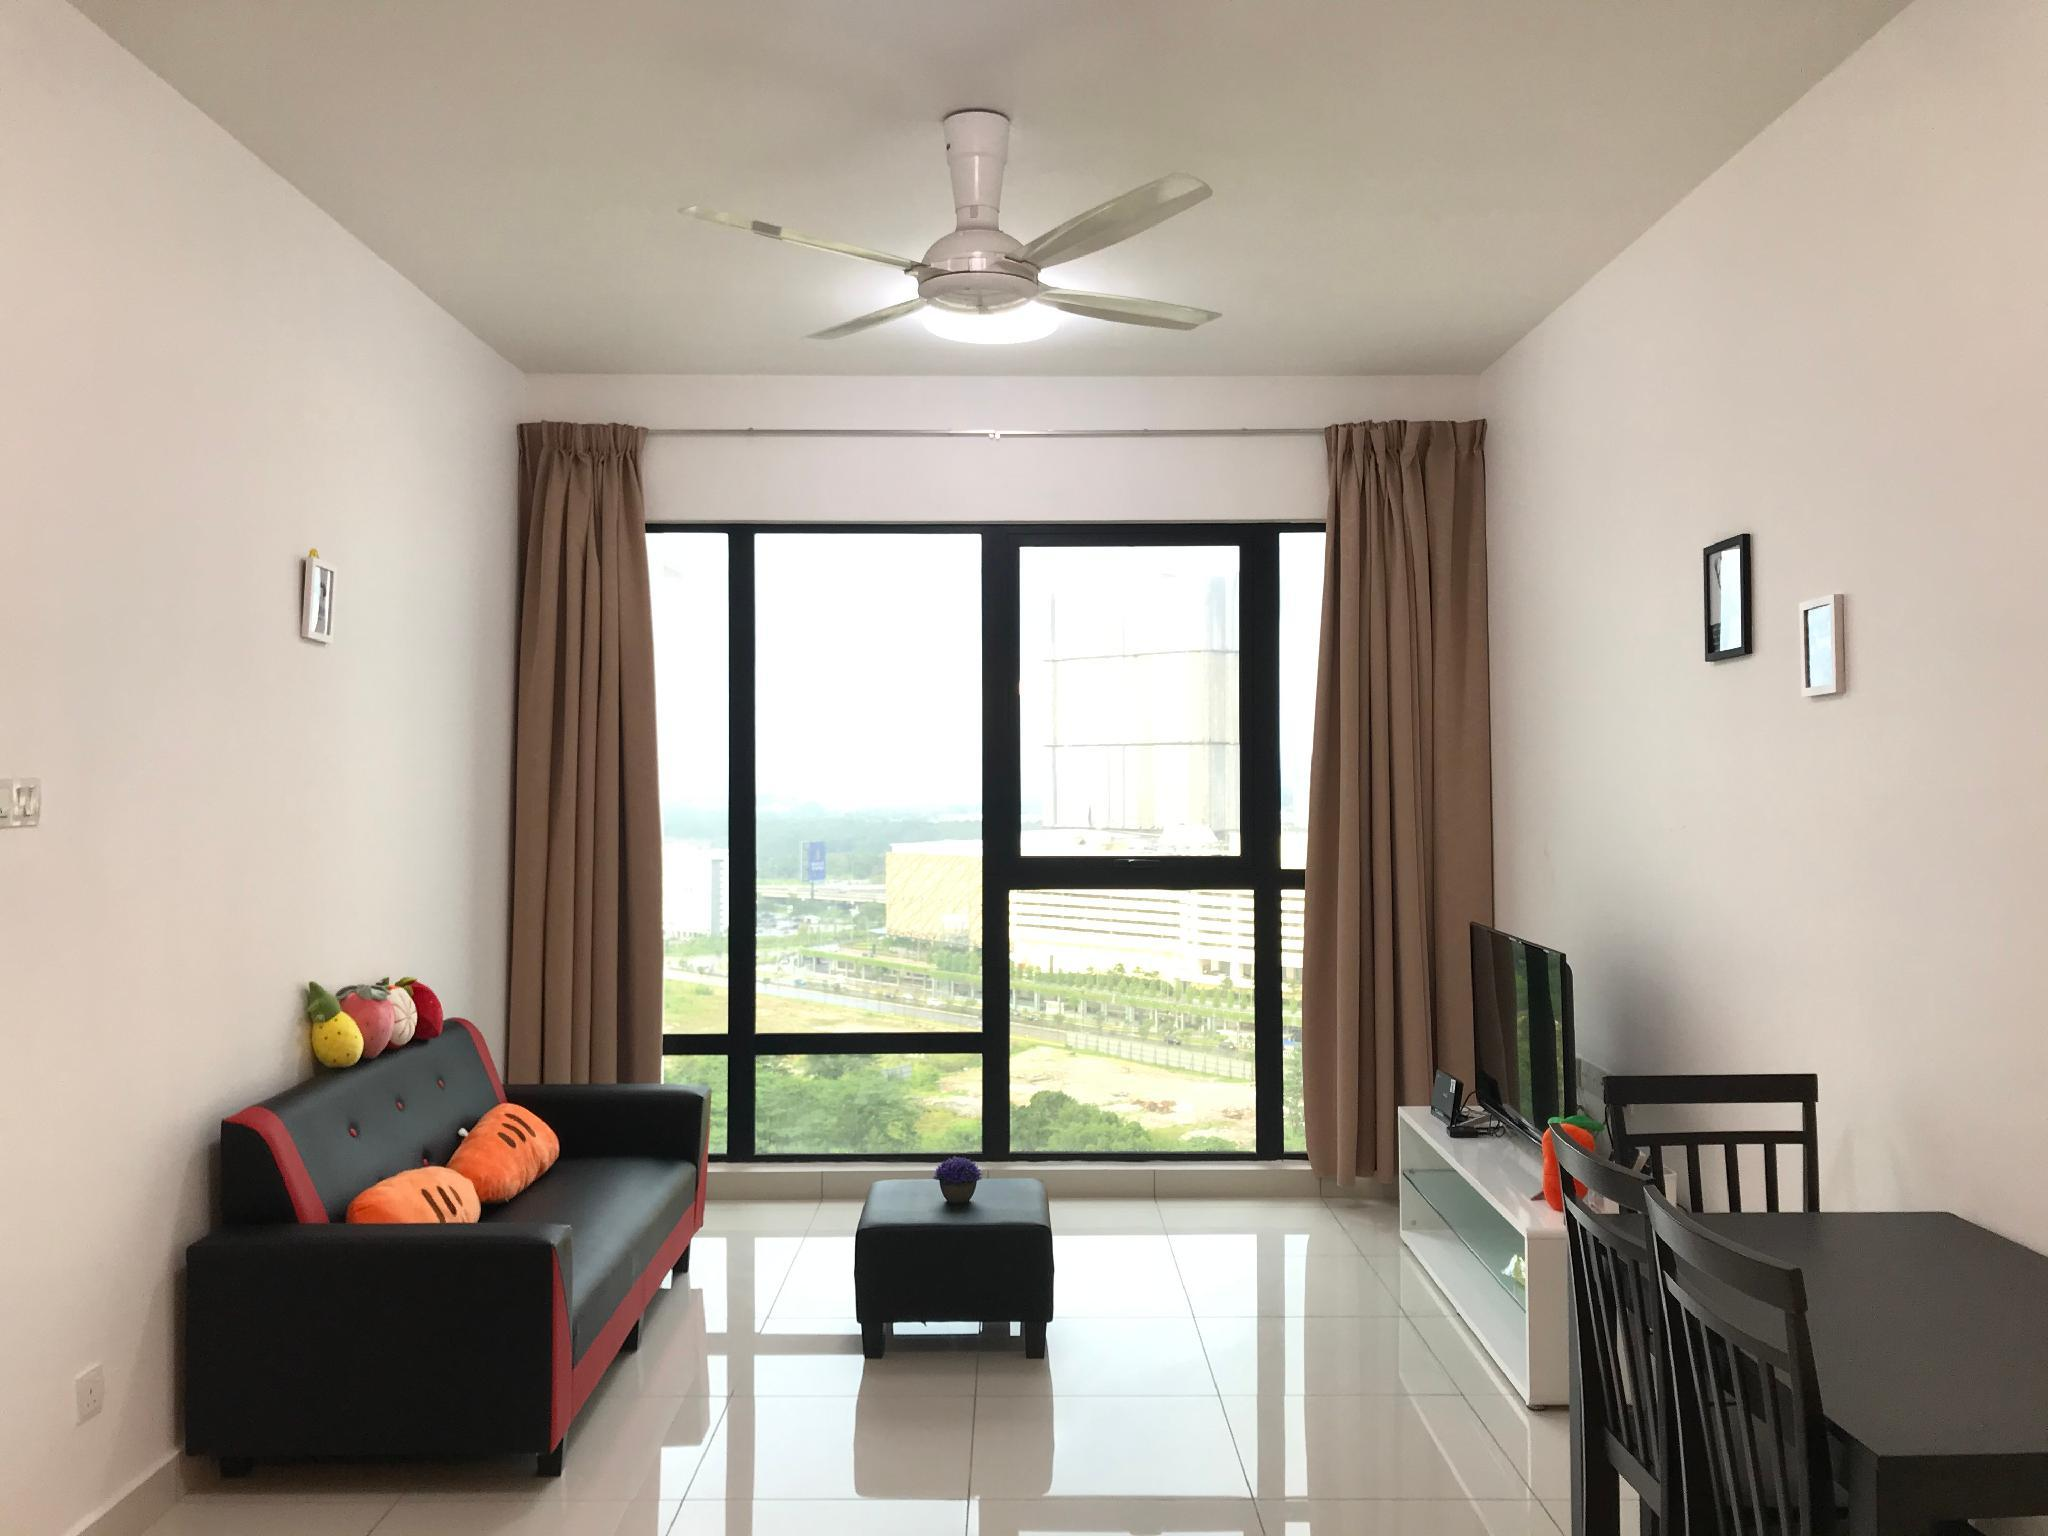 MidValley JB SweetFruity 2Rooms Apt Fit Up To 6pax